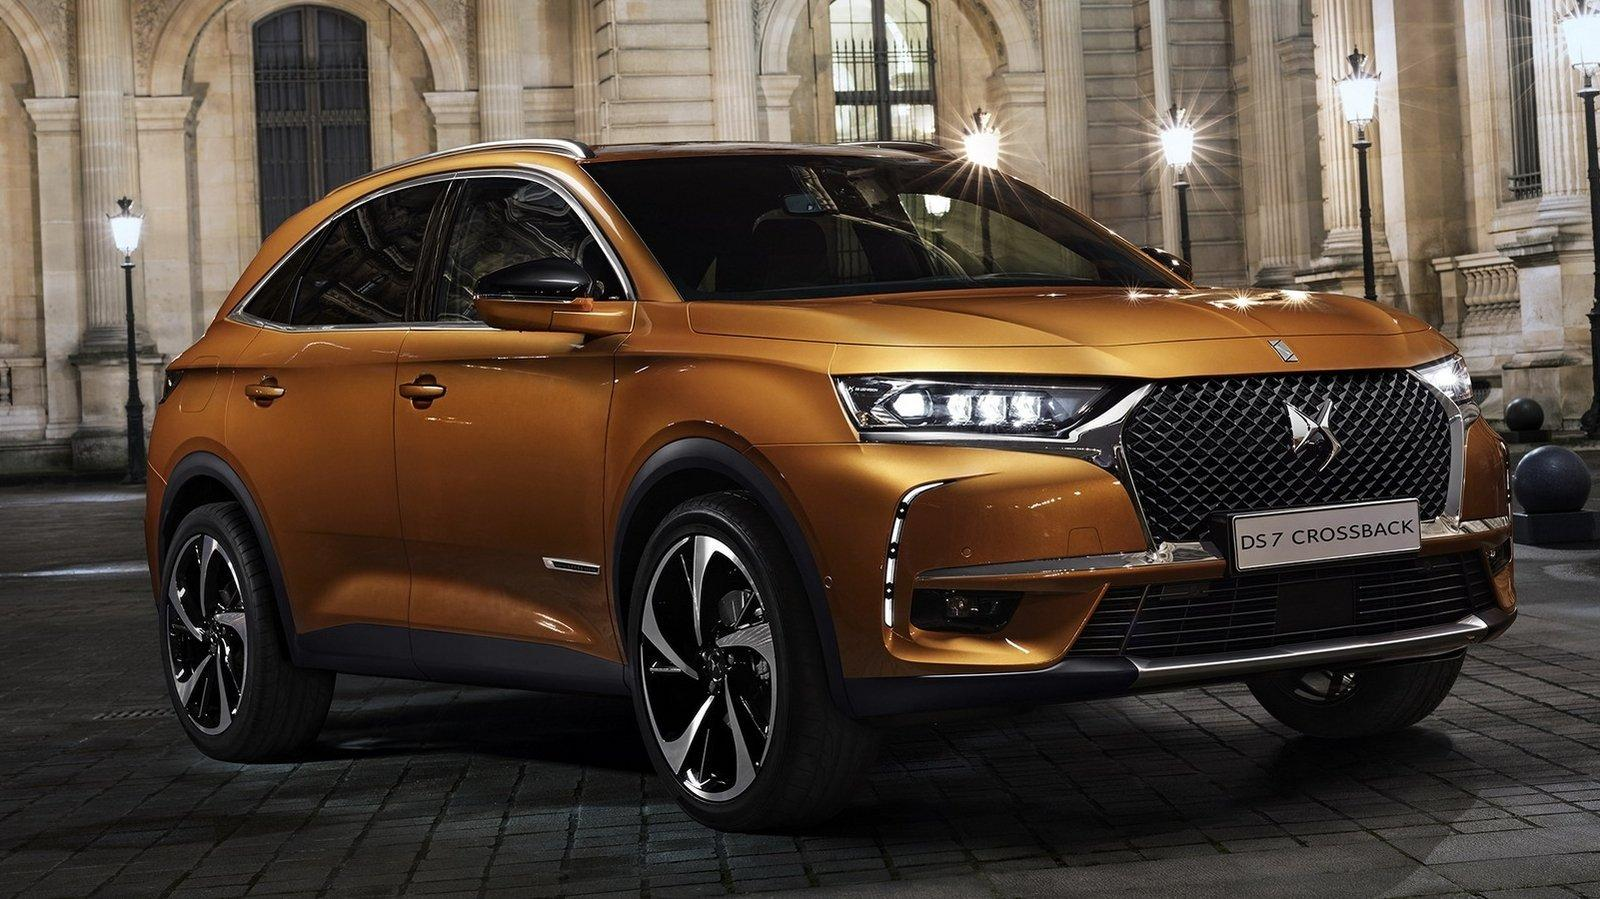 2018 DS 7 Crossback | Top Speed